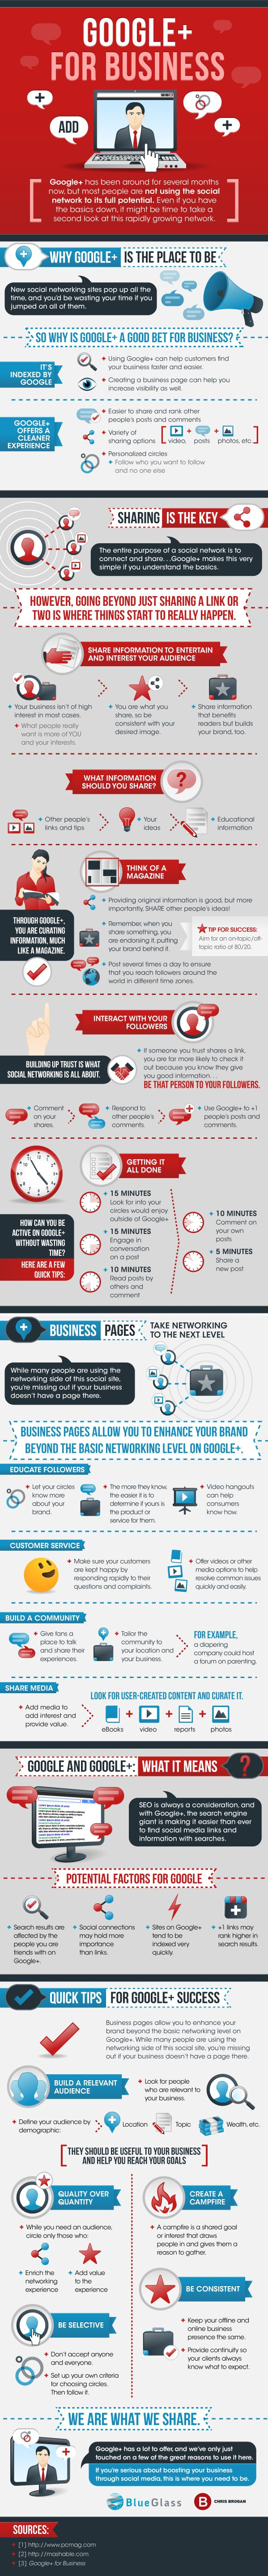 #Infographic: How to Use #Googleplus for Business  #socialmedia